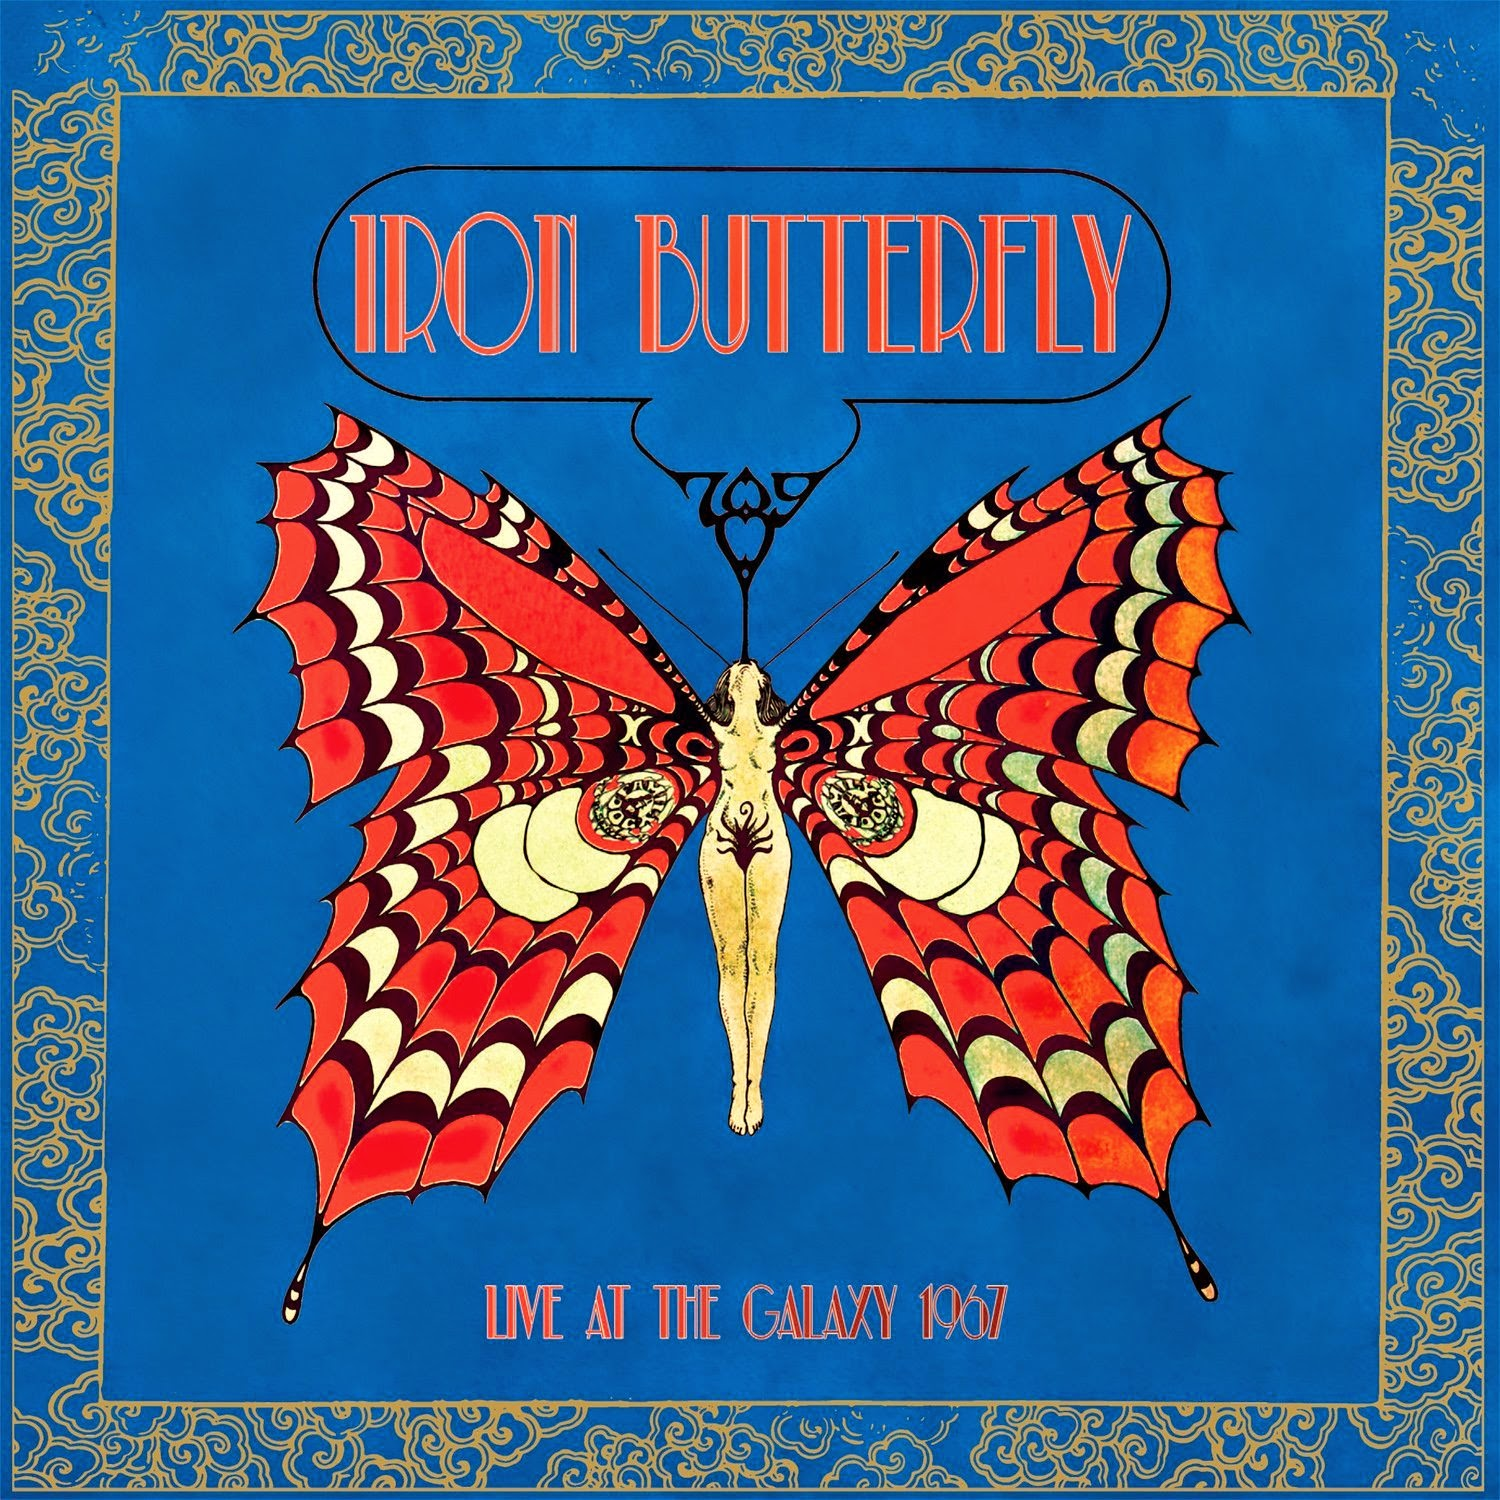 Iron Butterfly's Live At The Galaxy 1967